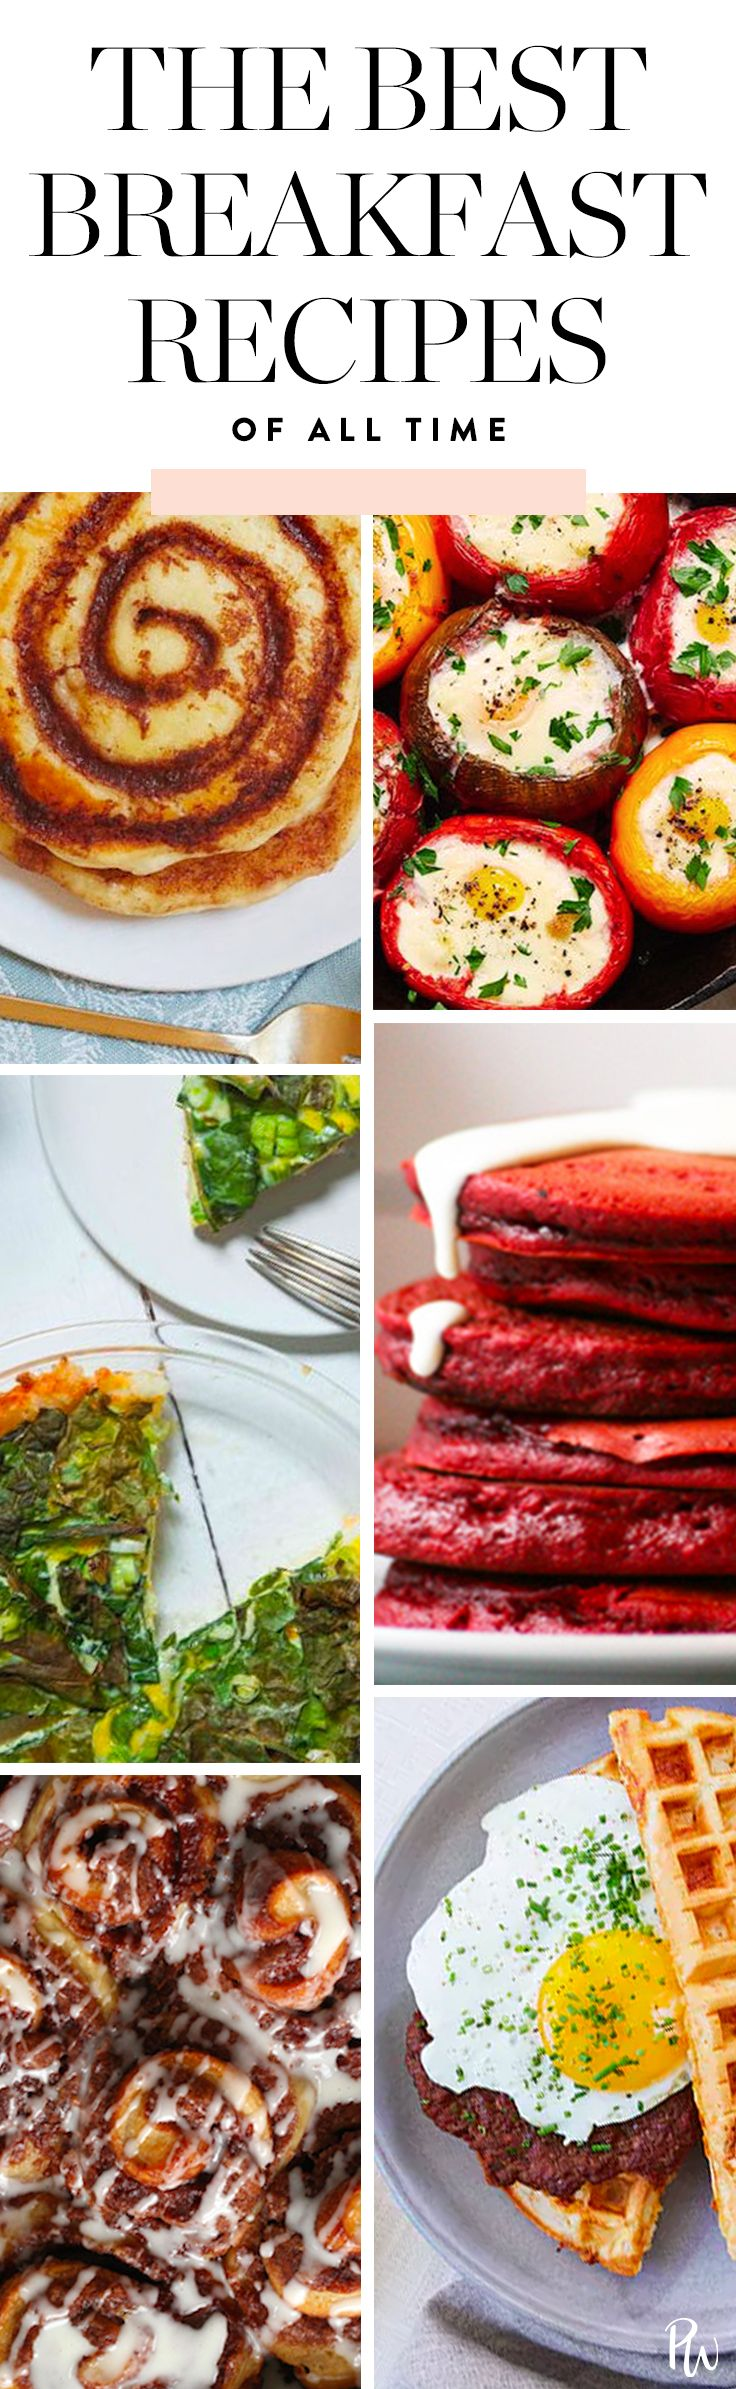 The Best Breakfast Recipes in the Whole Entire Universe #breakfast #breakfastrecipes #eggs #cinnamonrolls #pancakes